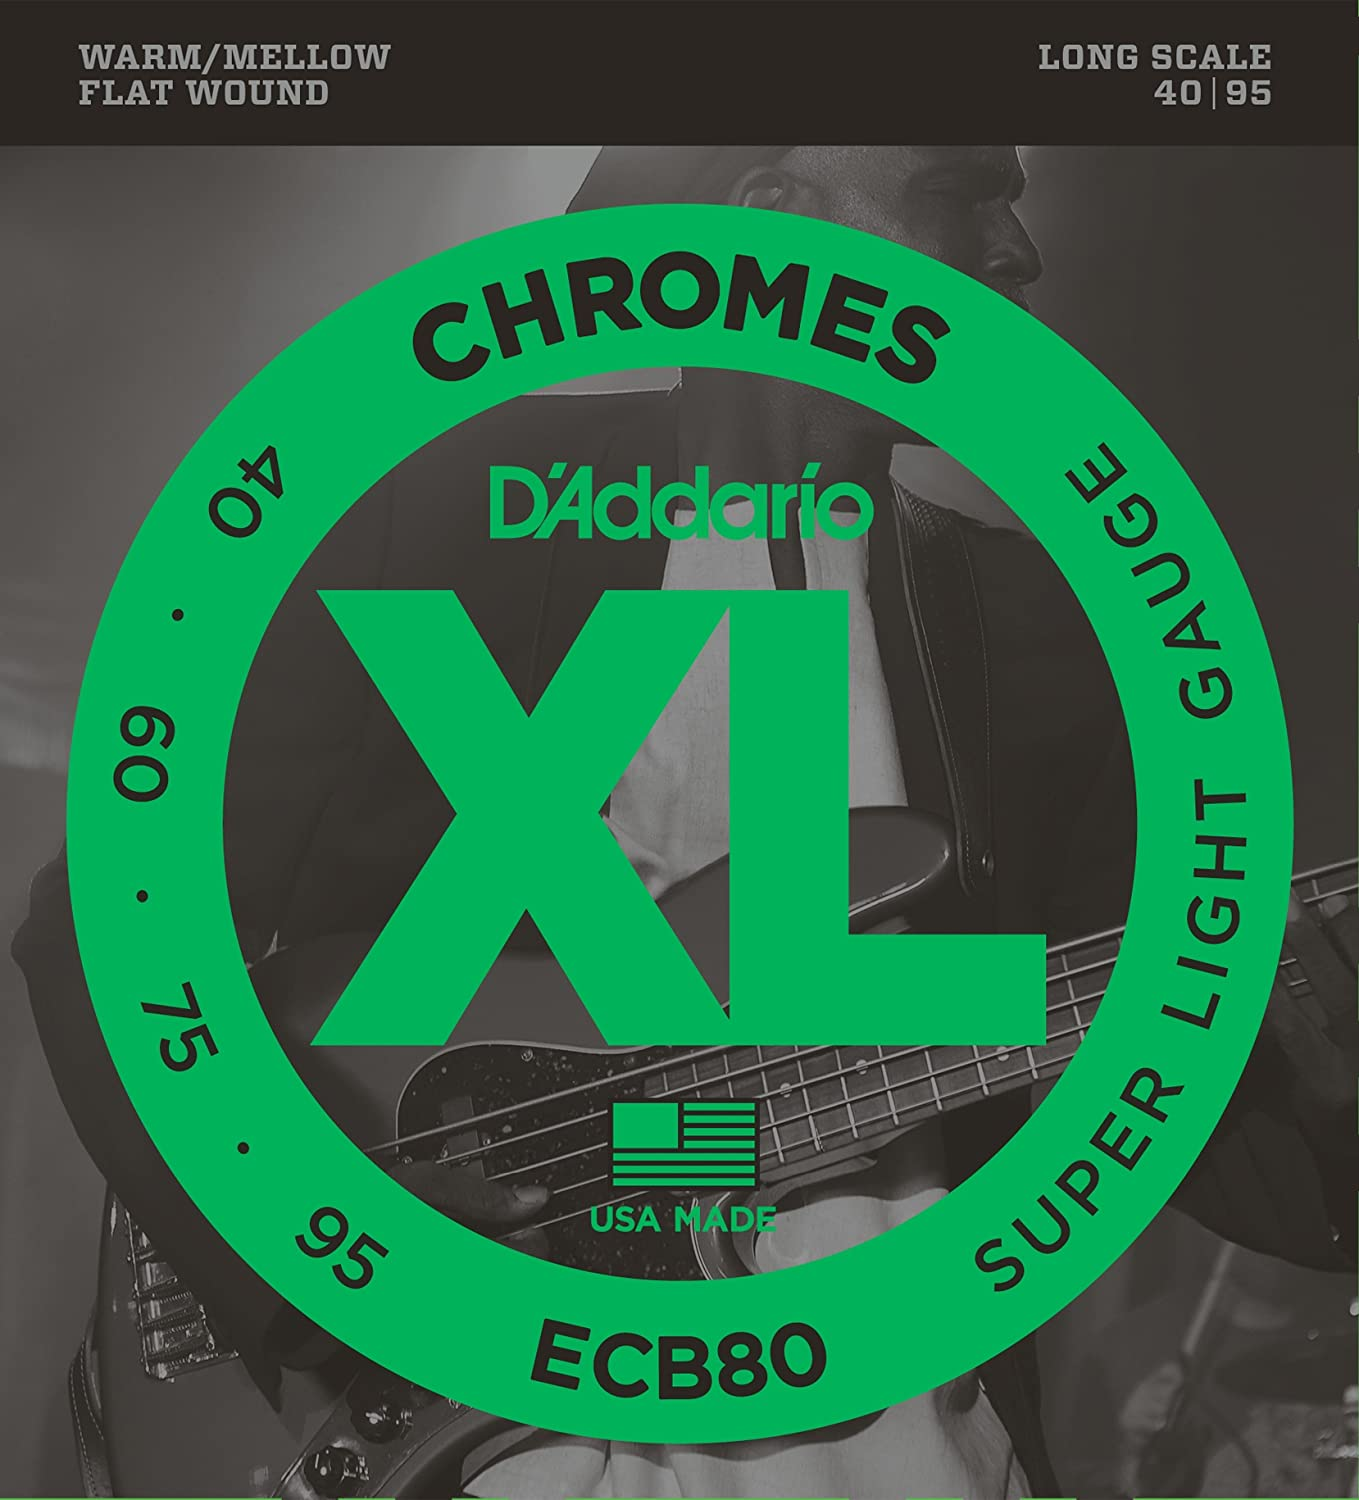 D'Addario ECB80 Bass Guitar Strings, Light, 40-95, Long Scale D'Addario